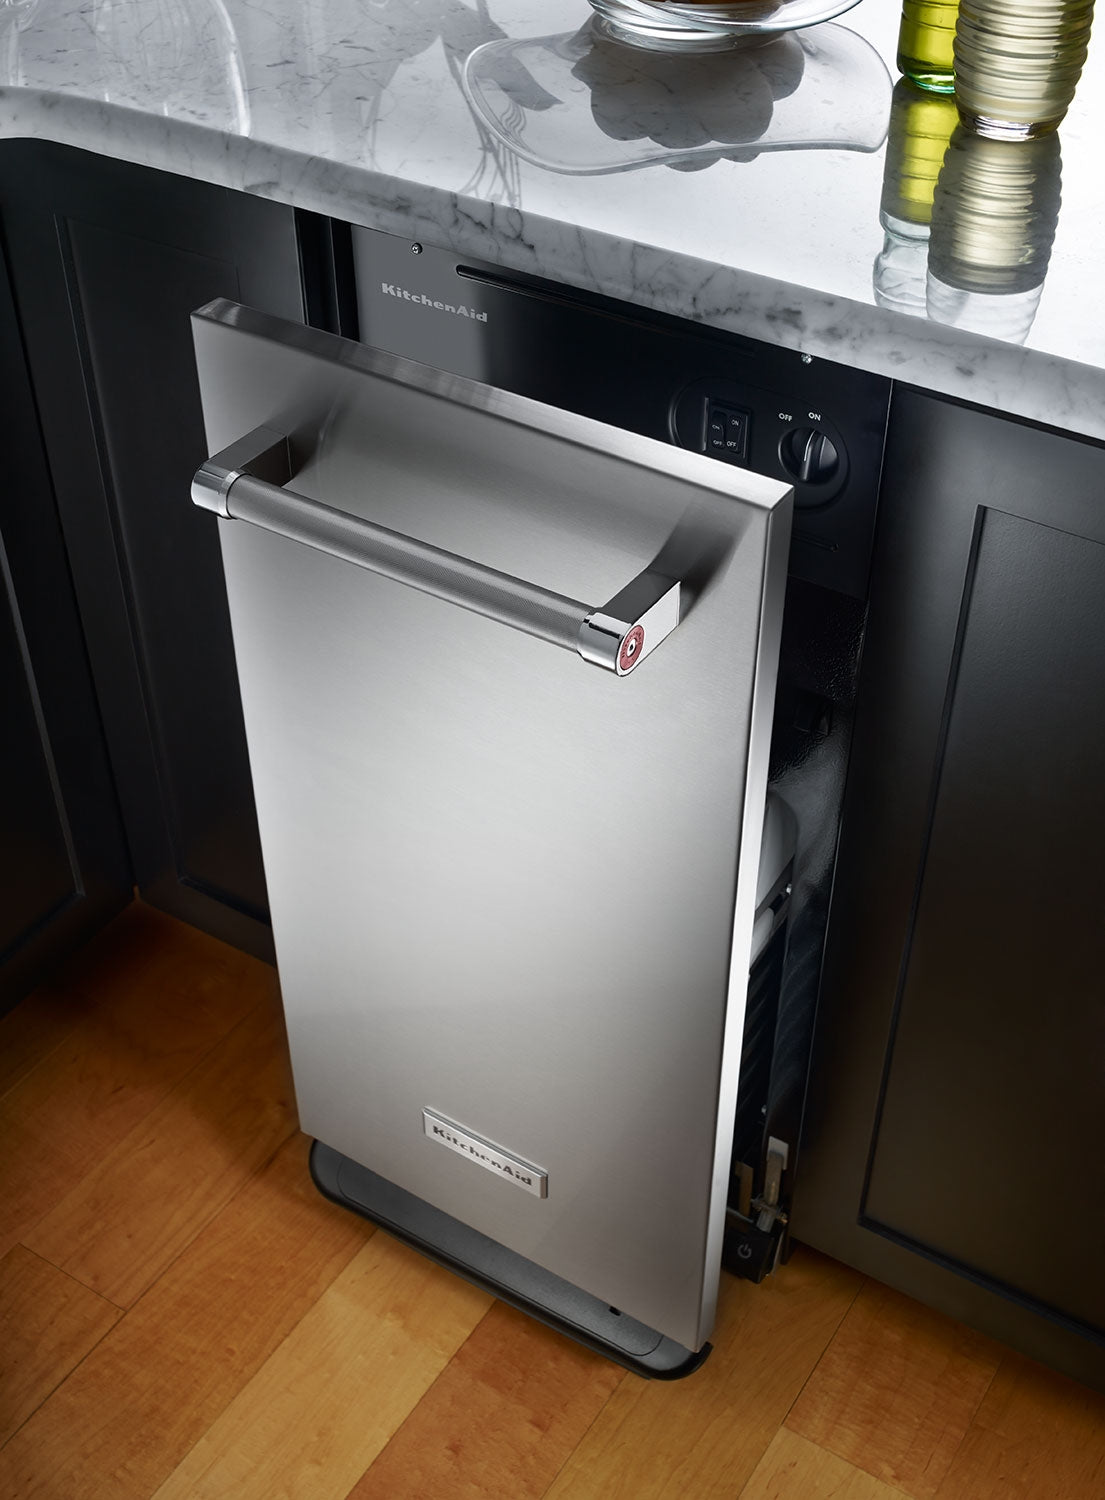 Kitchenaid 1 4 Cu Ft Built In Trash Compactor Stainless Steel